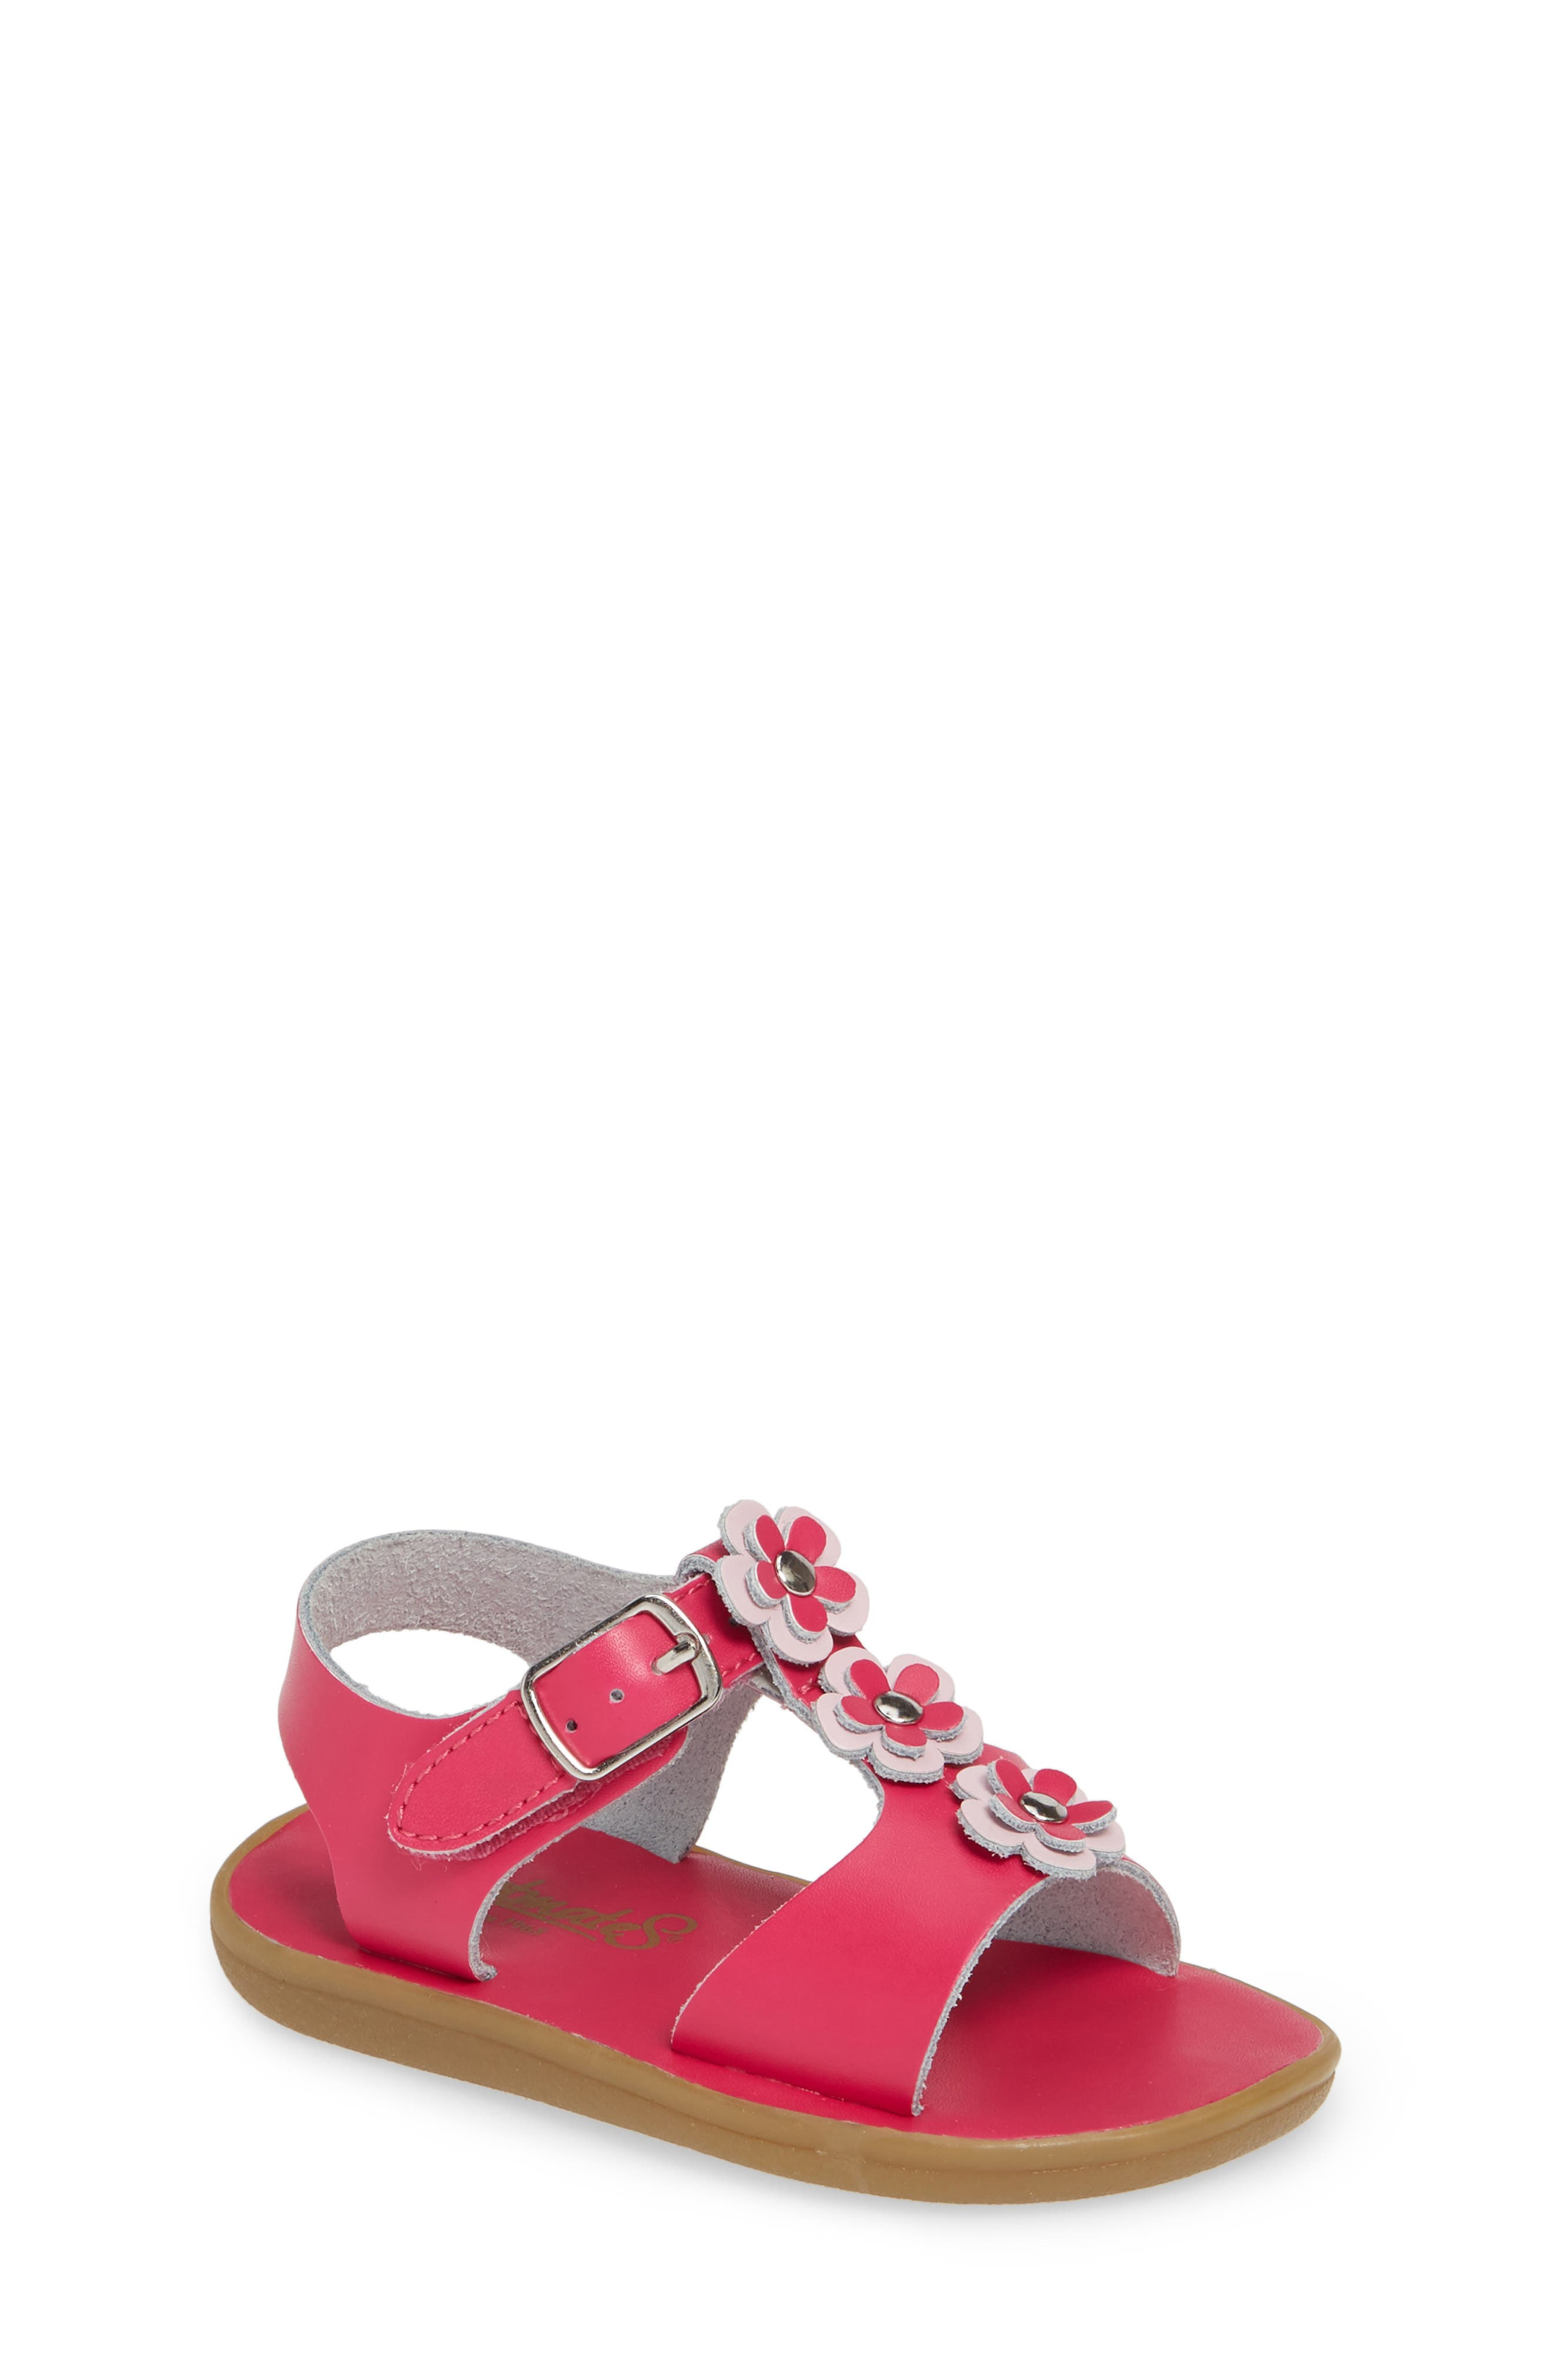 Made with an easy on-and-off hook-and-loop strap, this water-friendly T-strap sandal adorned with dimensional blooms is ideal for the beach, pool or splash pad. Style Name: Footmates Jasmine Waterproof Sandal (Baby, Walker, Toddler, & Little Kid). Style Number: 5794346. Available in stores.